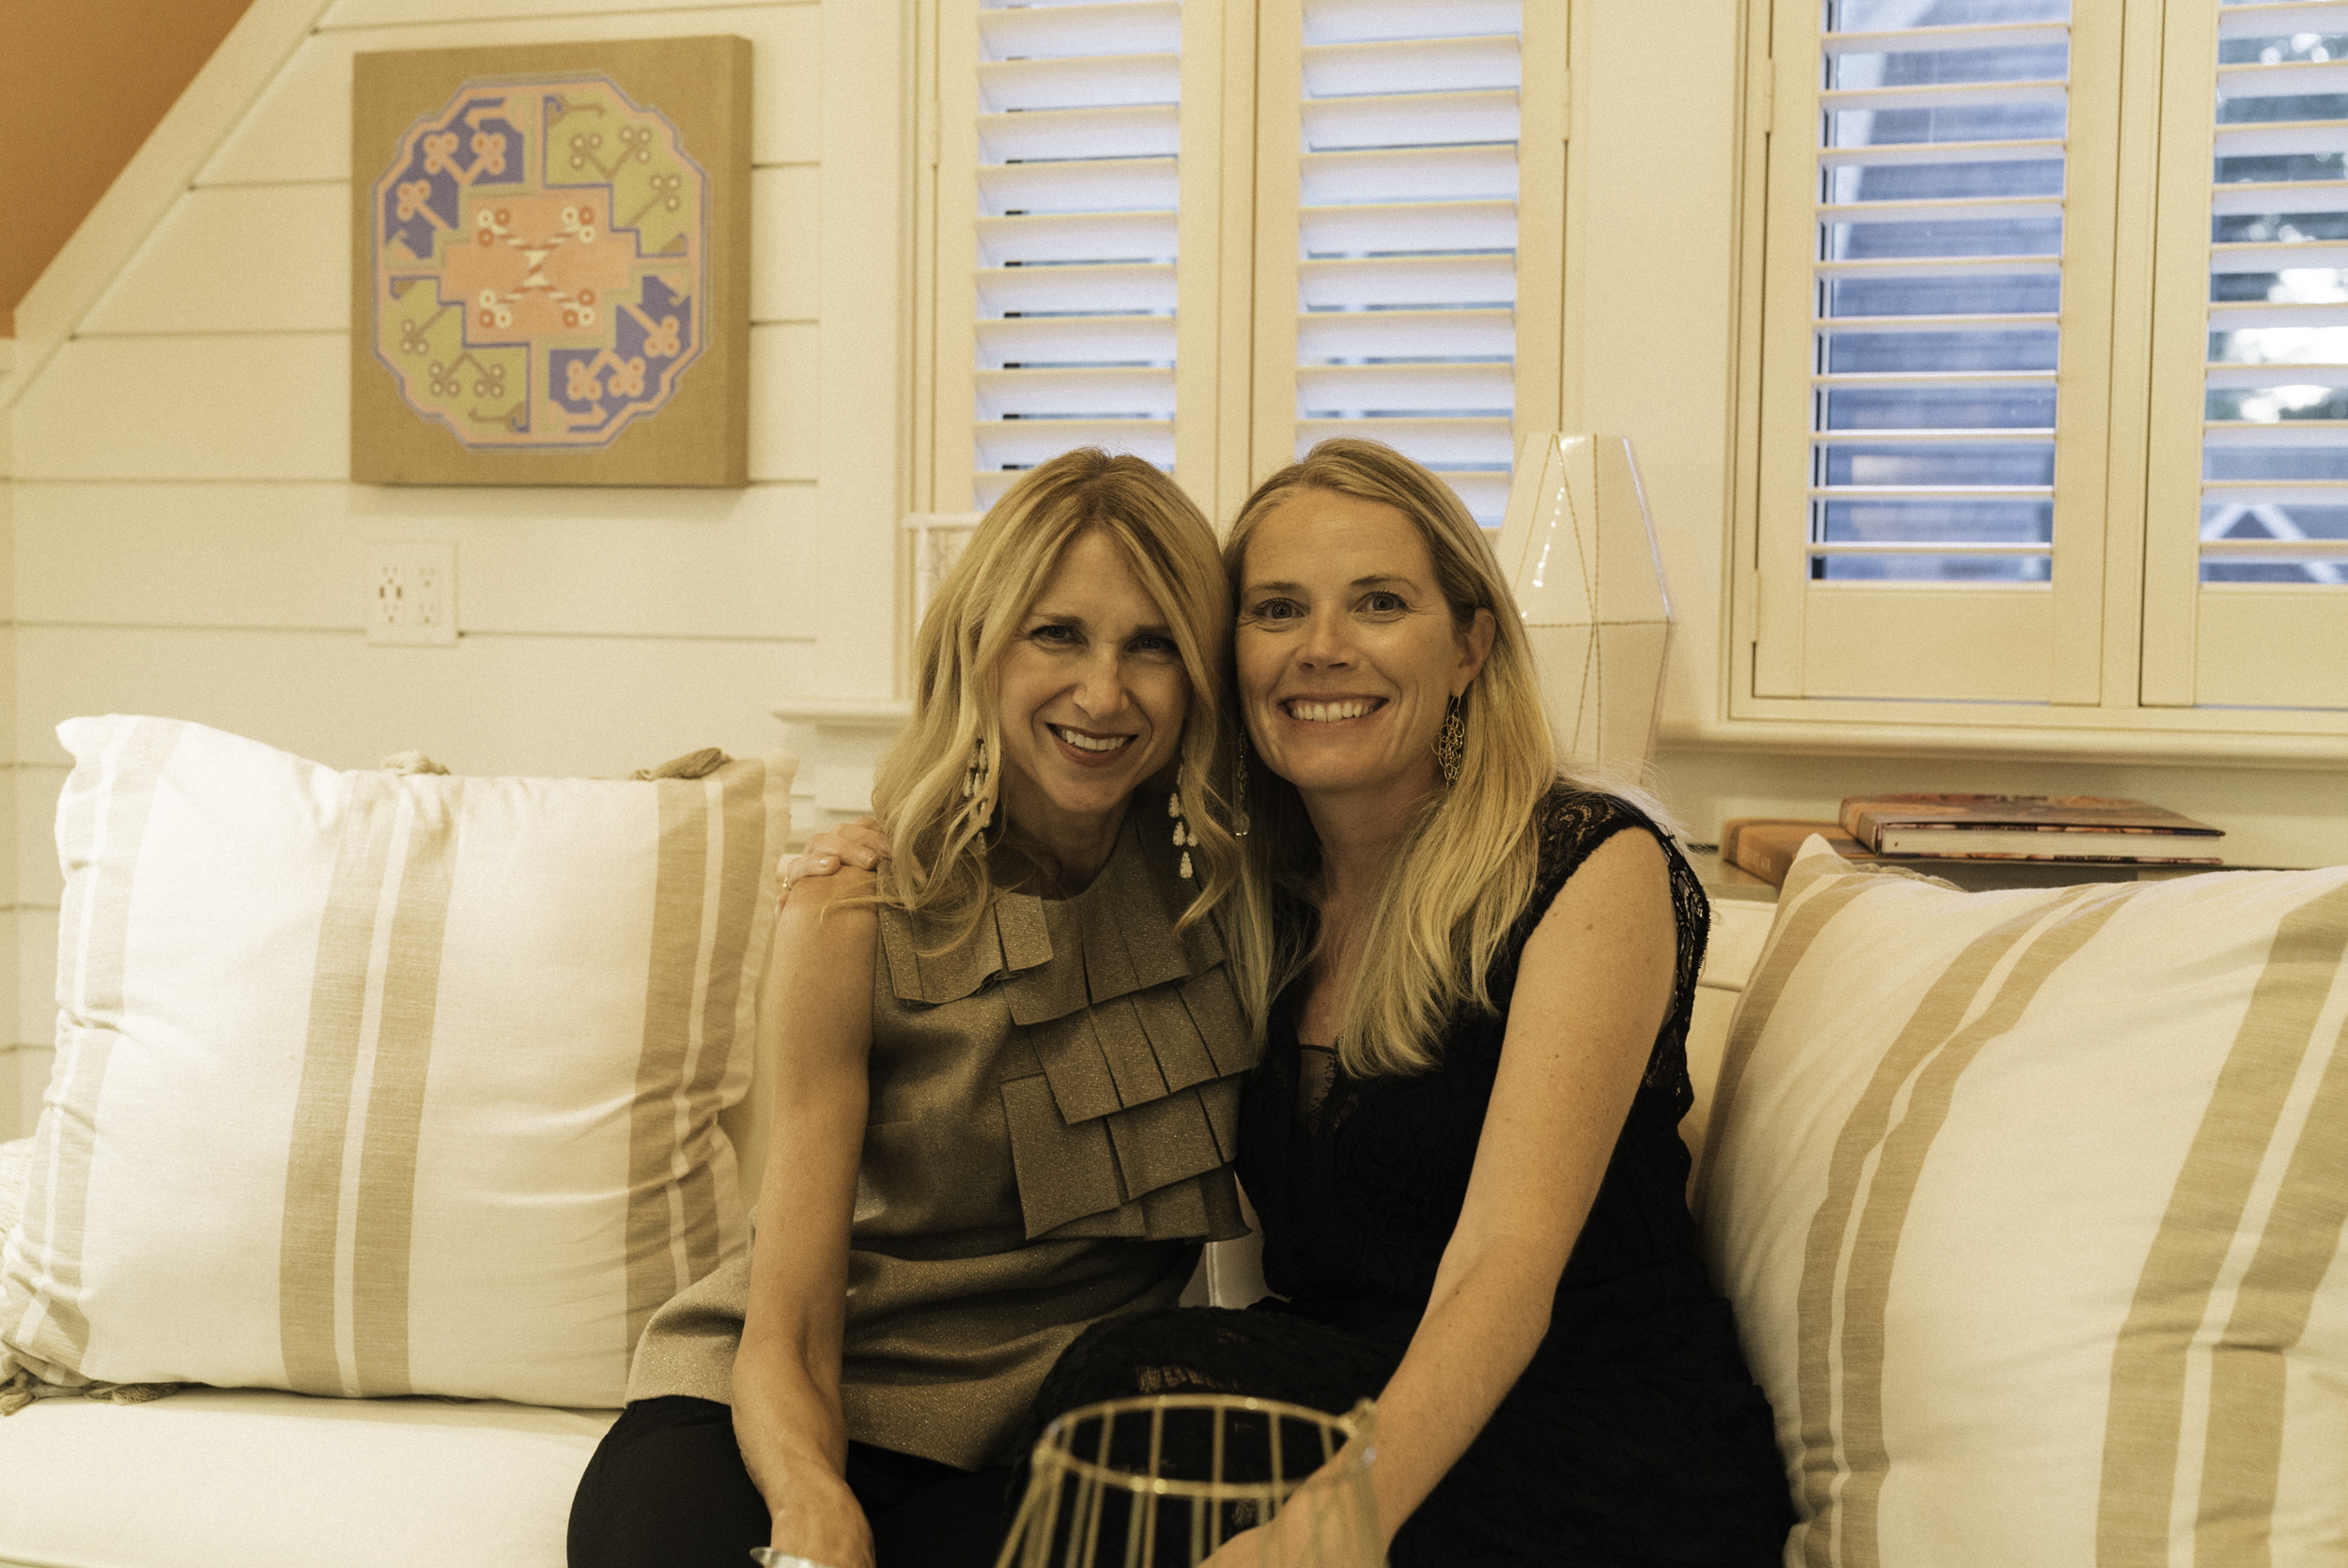 Gallerist Jessica Hagen and Collector Kristen Connell in the VIP guest quarters (left to right) with a painting by James Steele